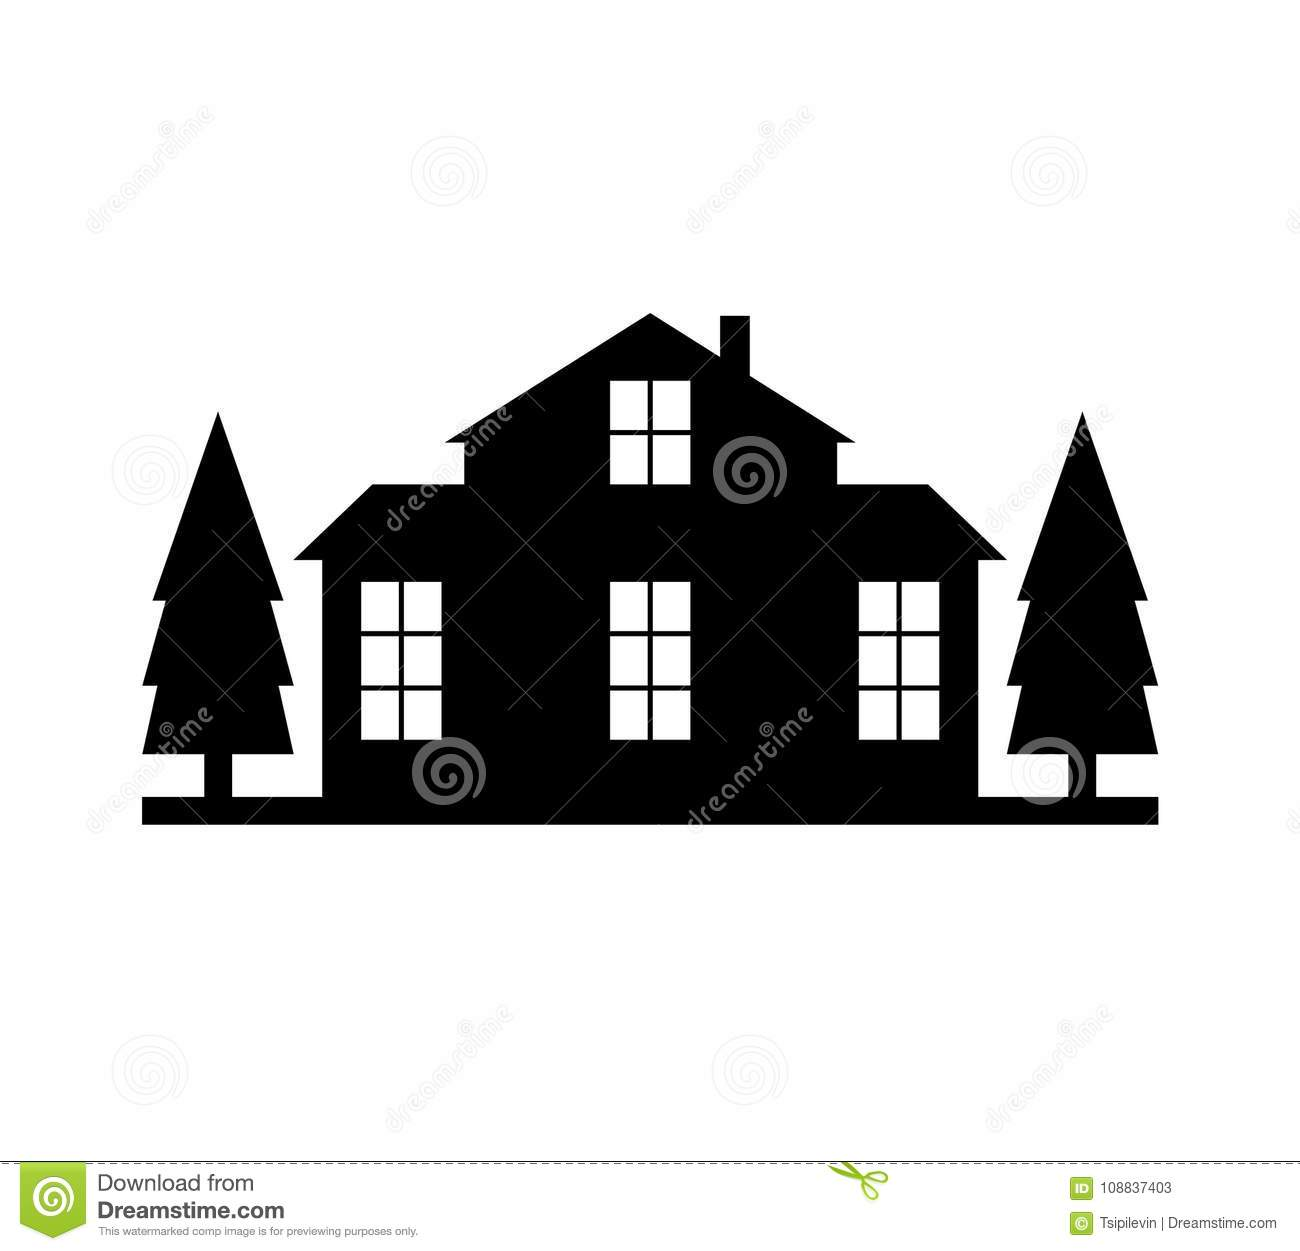 house silhouette with trees stock illustration illustration of